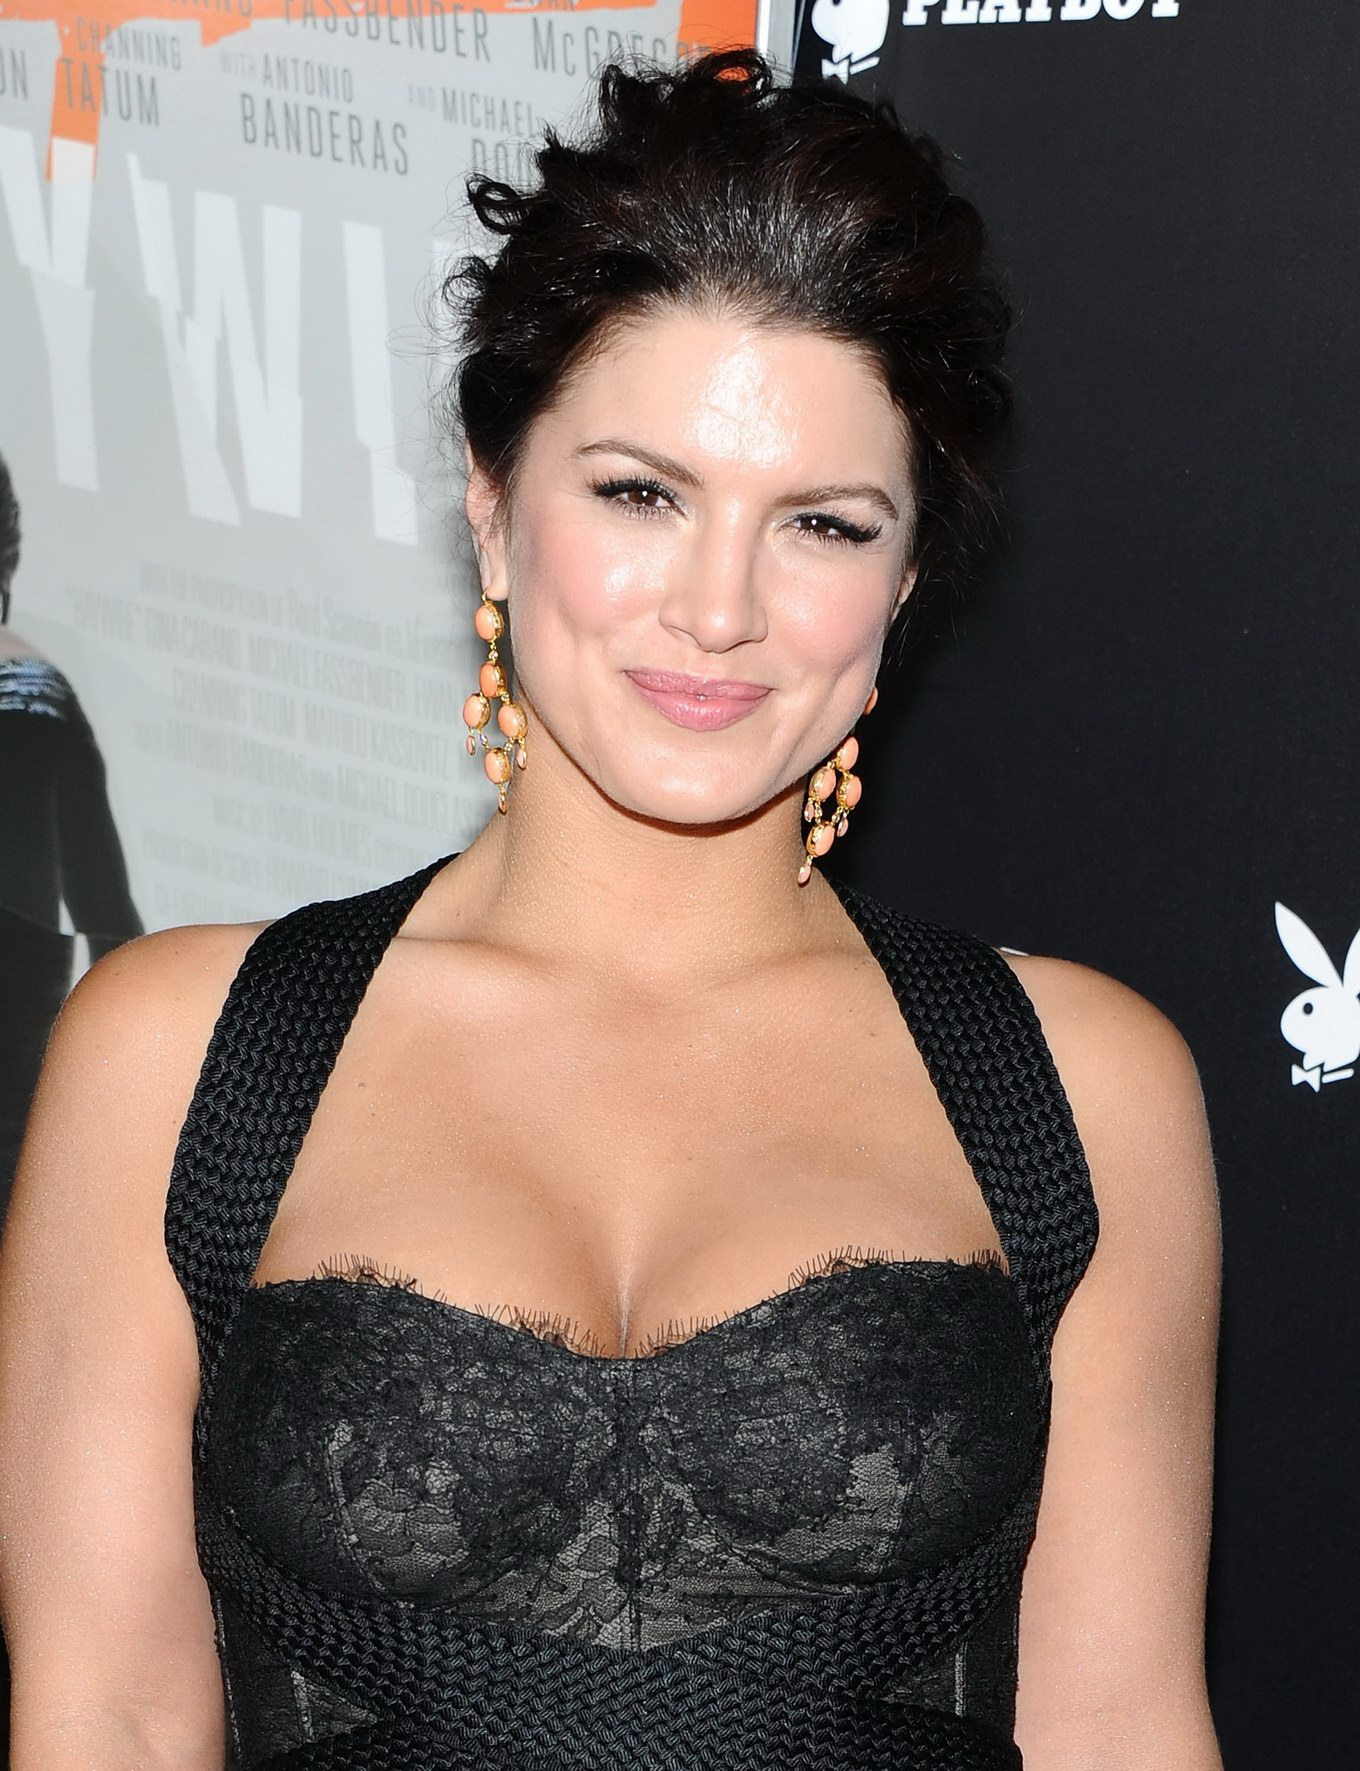 For that gina carano erotic pics